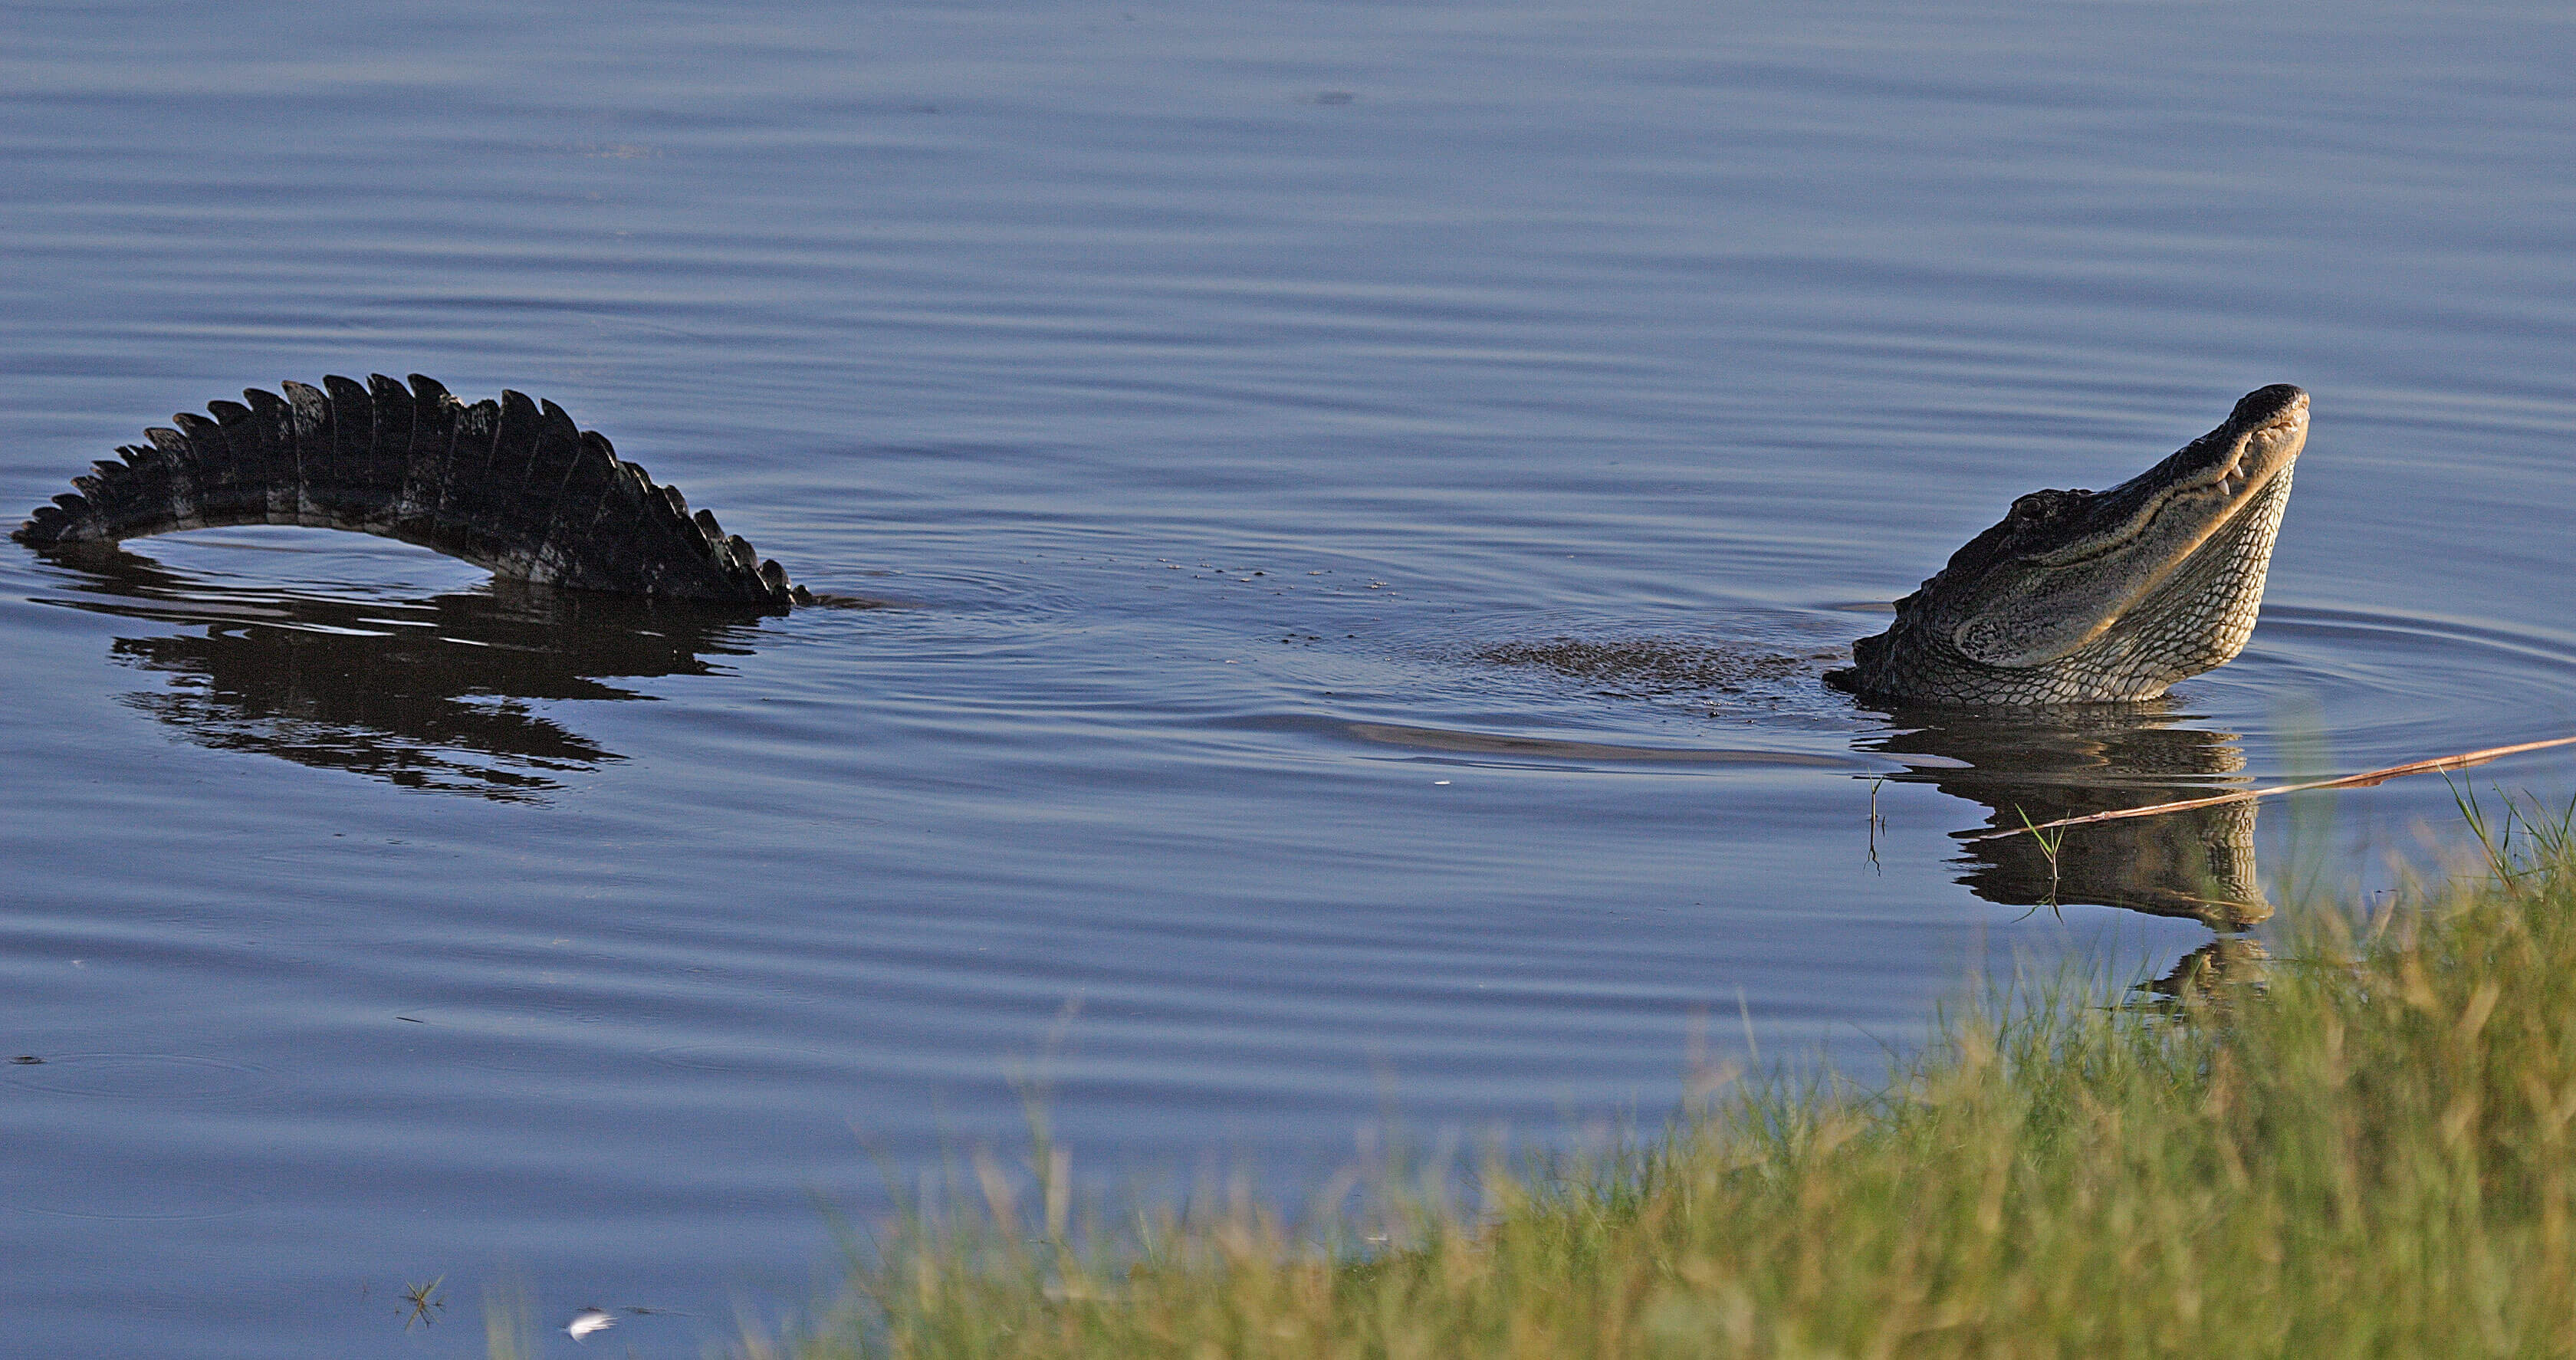 A bull gator at the St Marks National Wildlife Refuge